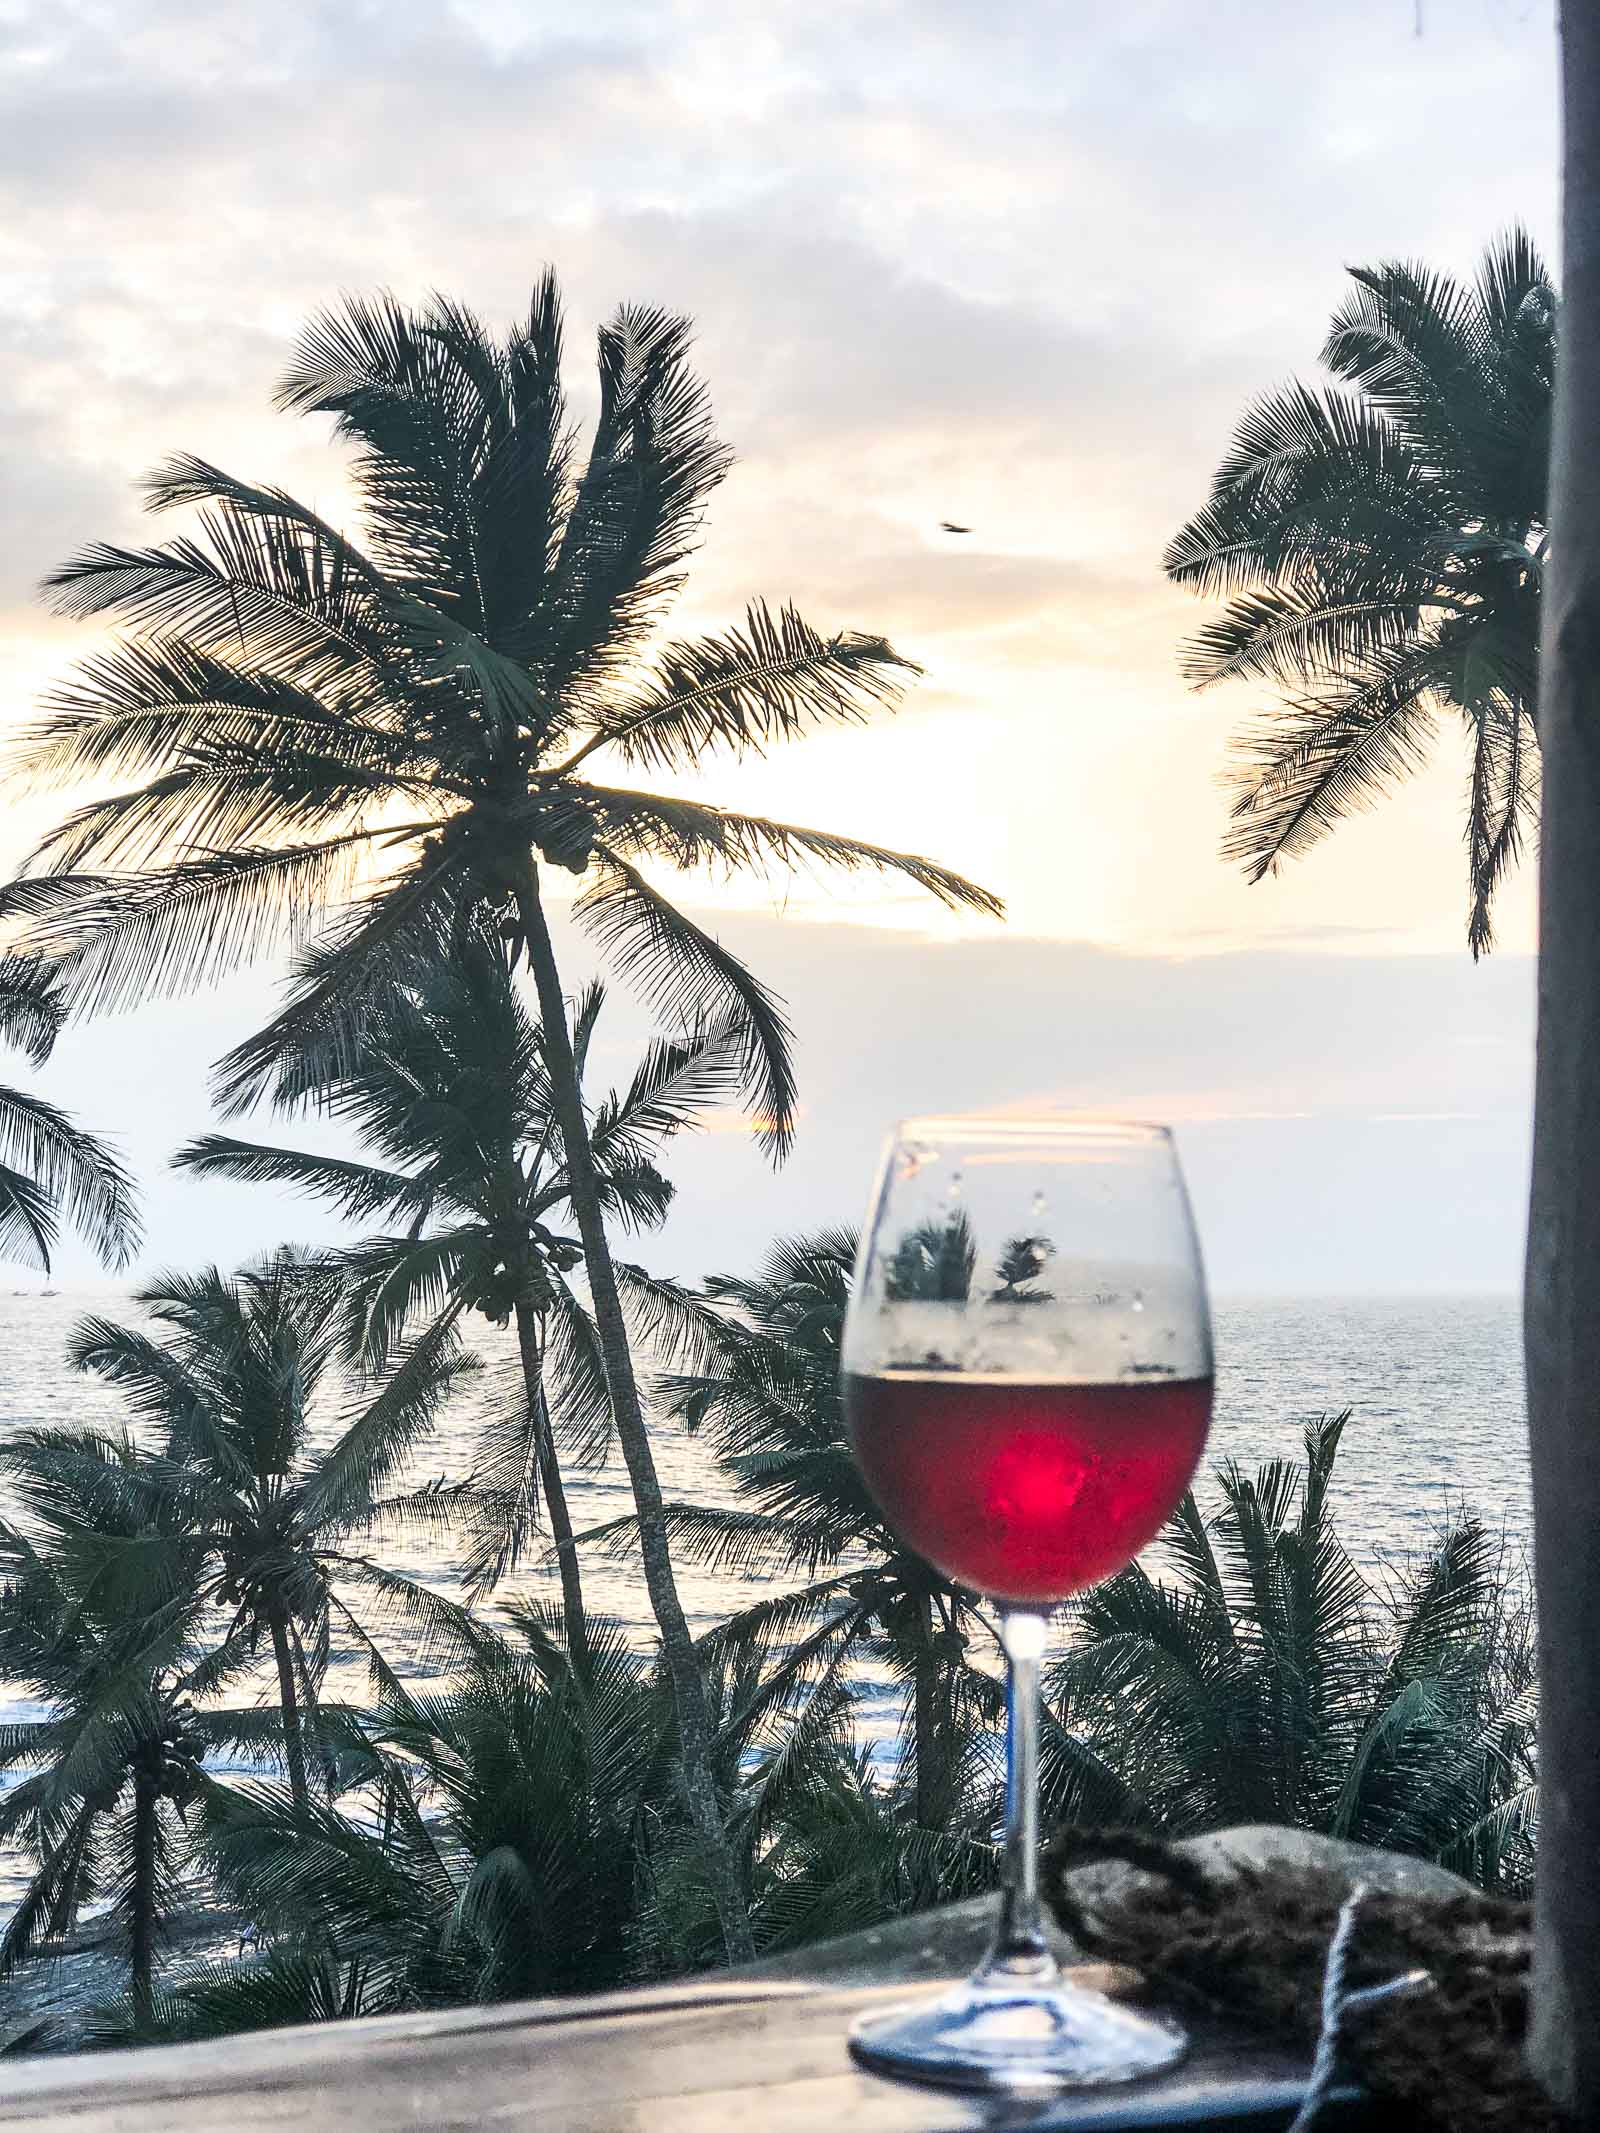 Goa 2018 Archanas Kitchen Offsite Anteres Wine 1 2